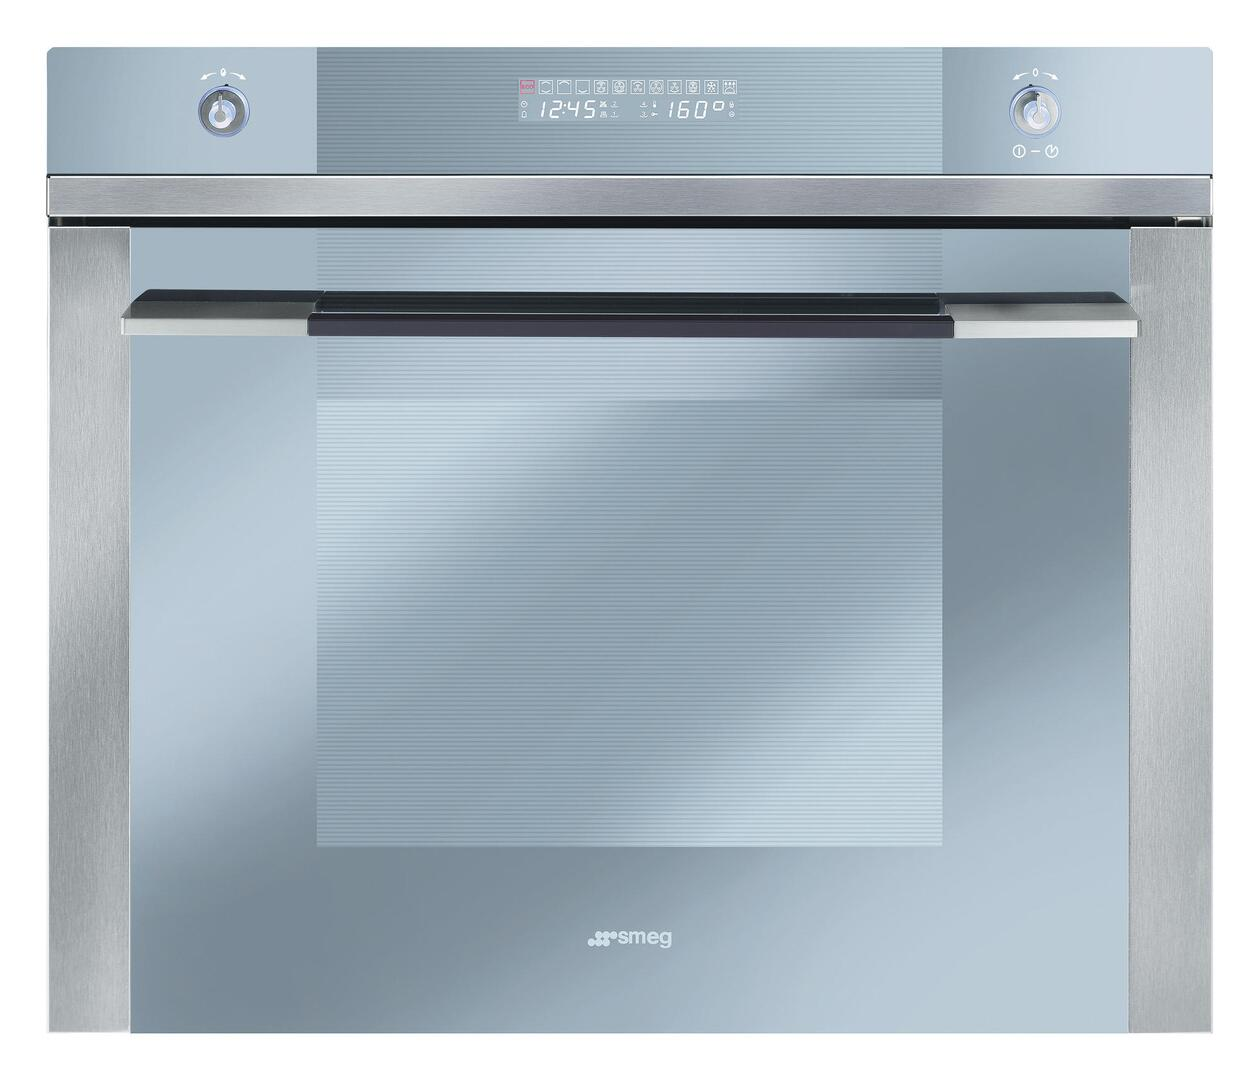 Smeg Sc712u 27 Inch Linea Series Single Electric Wall Oven With